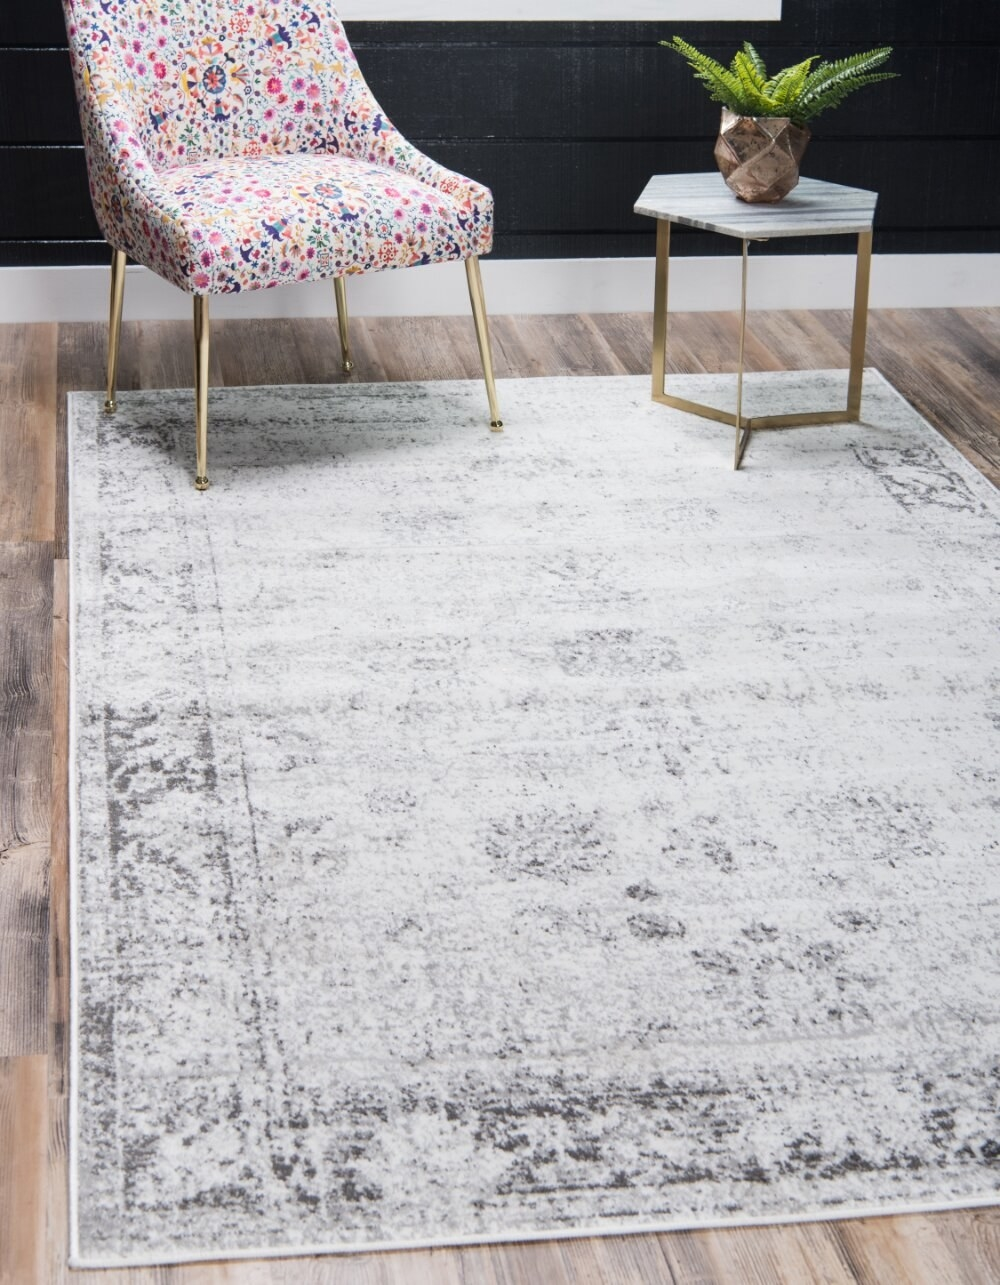 The large gray area rug